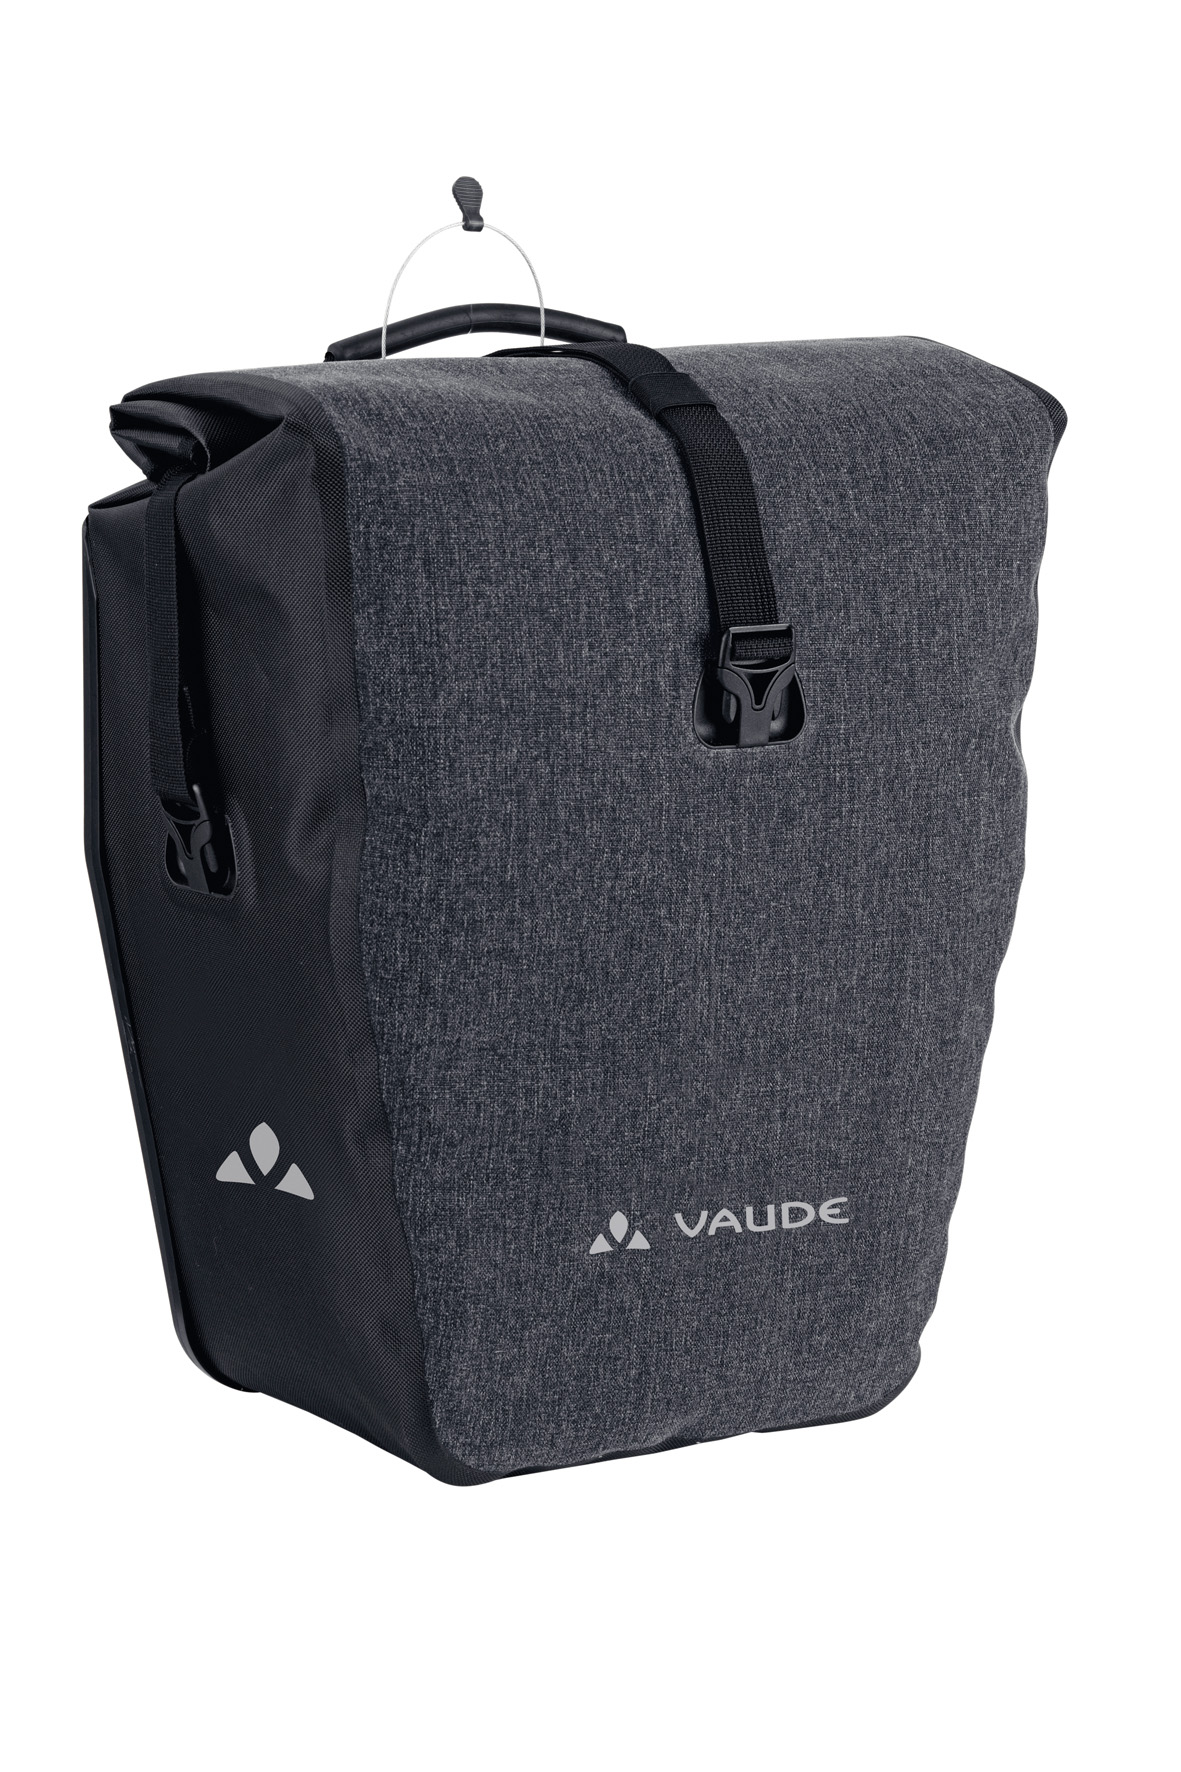 VAUDE Aqua Deluxe Back black  - schneider-sports